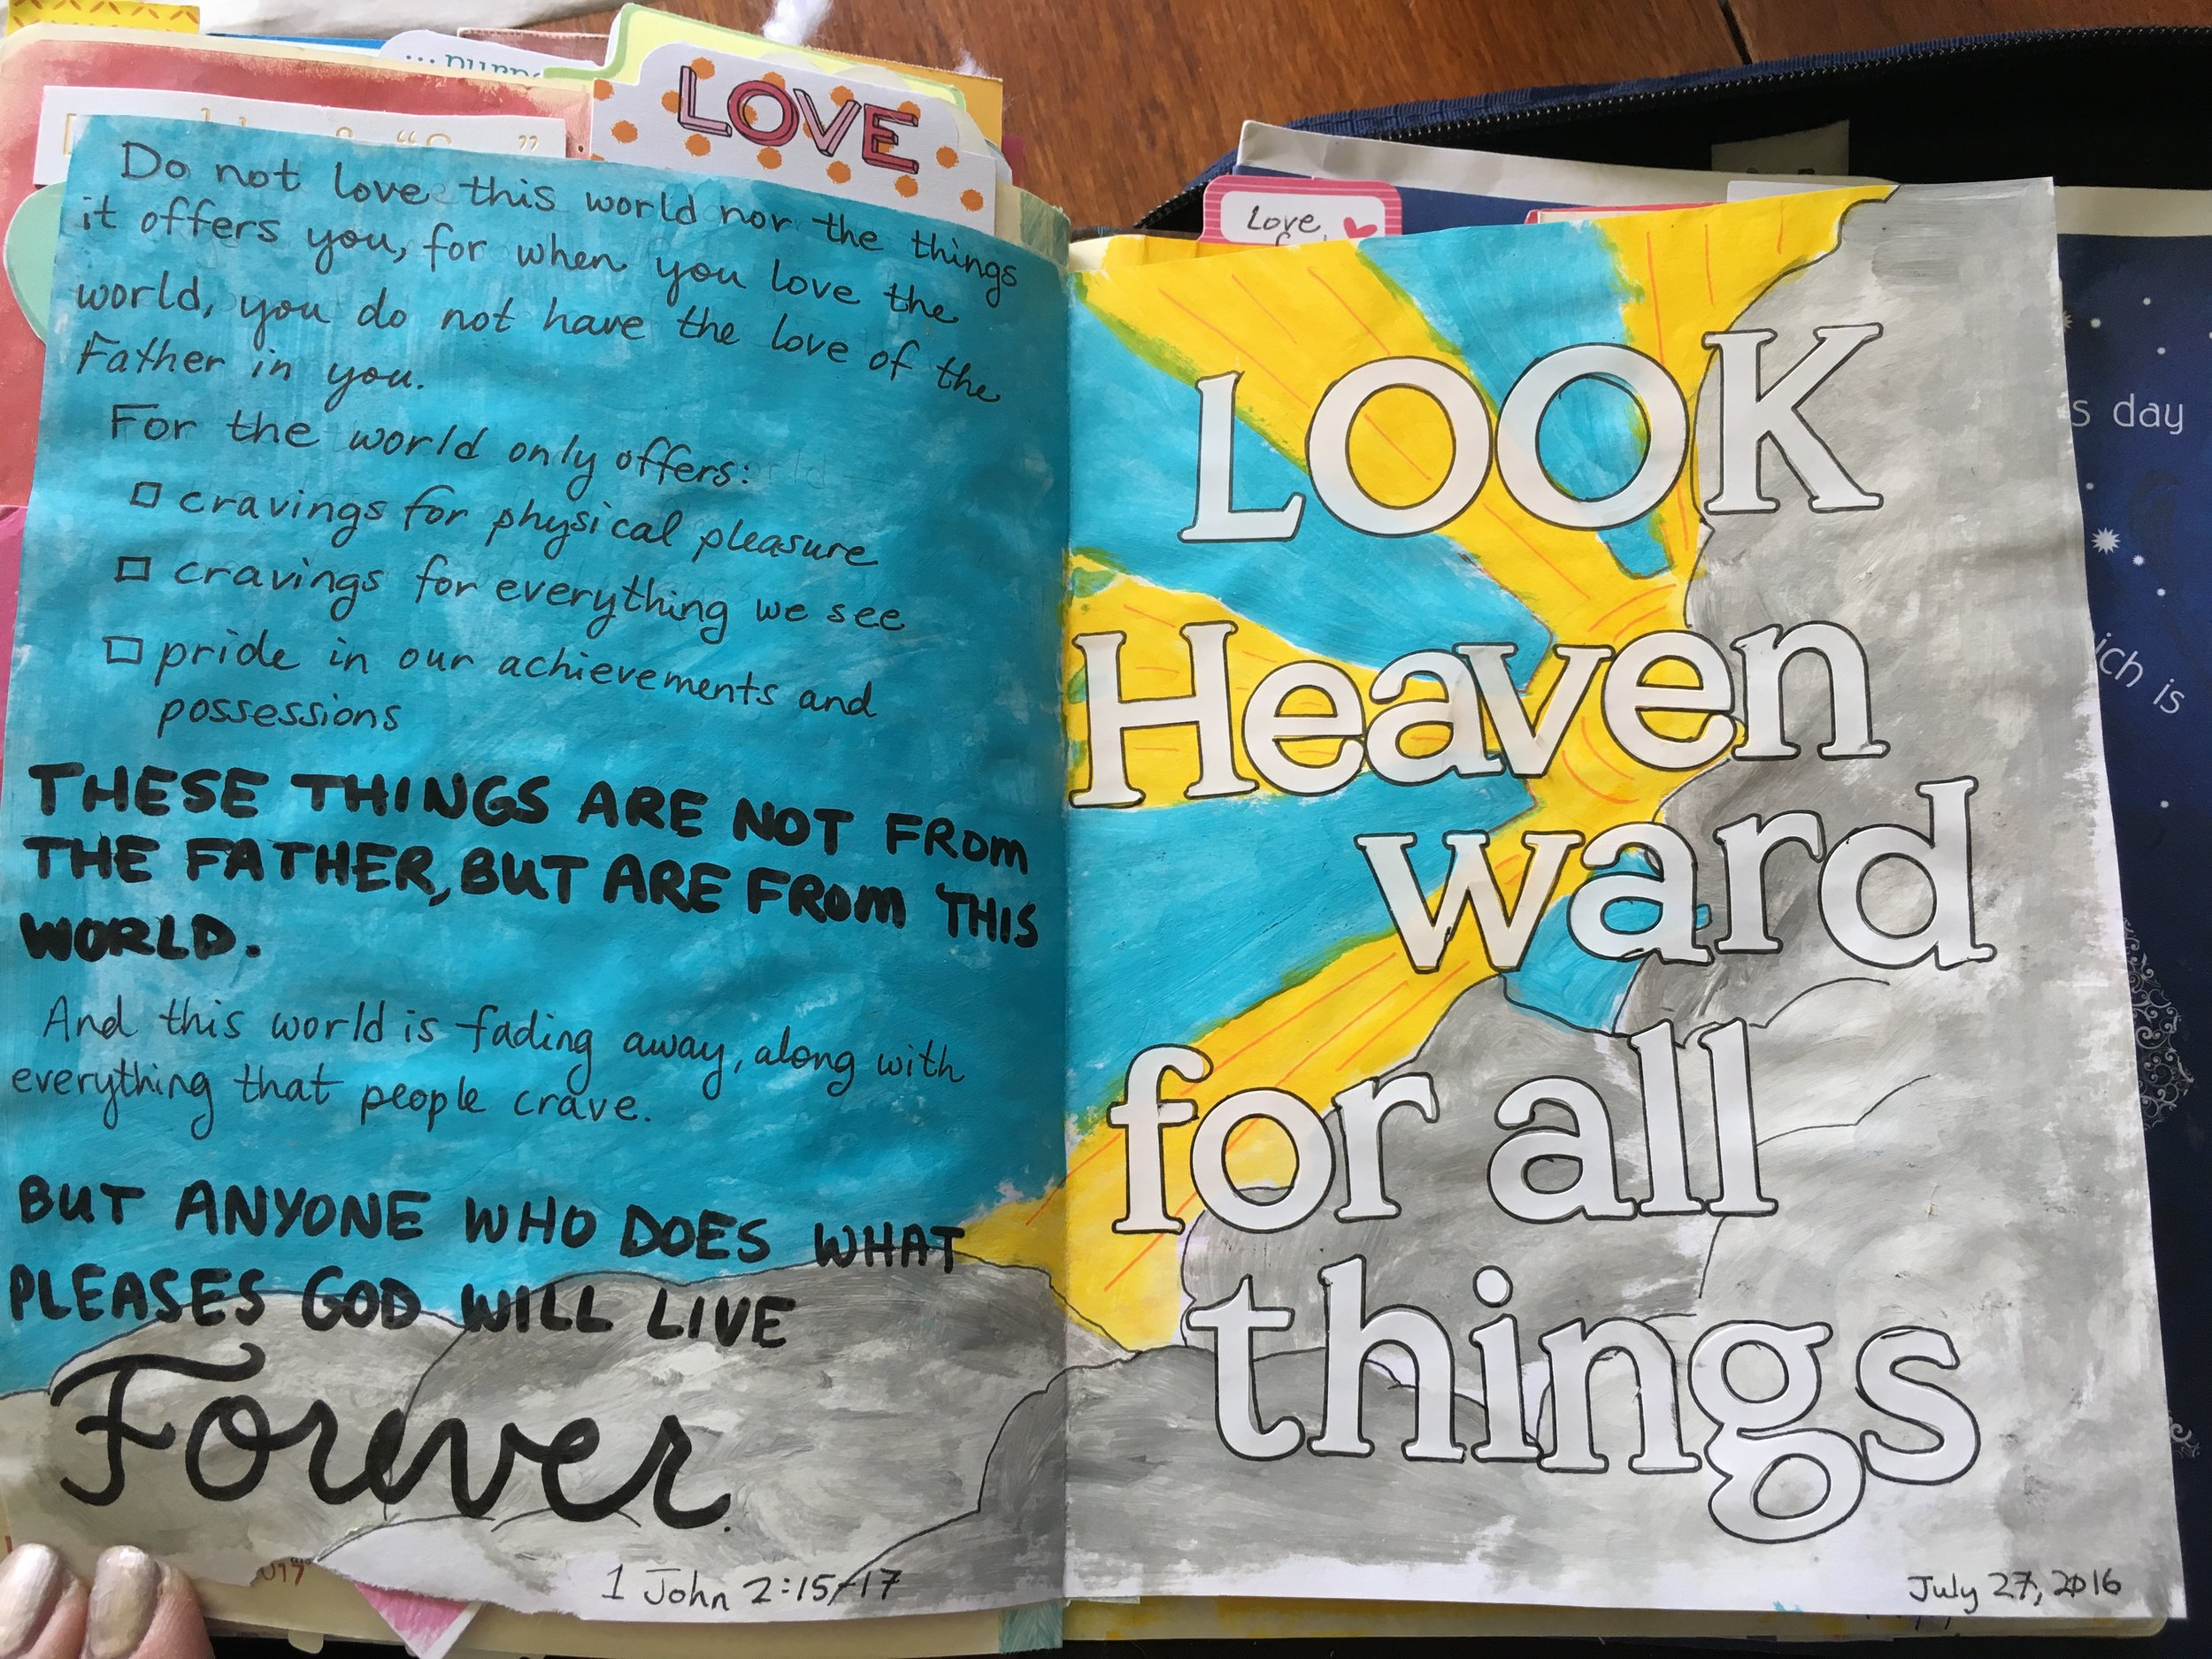 Sierra Burden 1 John 2:15-17   I loved how the paint and stickers worked well on the inside pages of this insert. The idea for me was to take the focus away from the worldly things and focus on the heavenly realm with clouds and a breath-taking sky/heaven. The verses talk about how the earthly desires are not what God wants us to focus on, but that He wants us to look heavenward for all things.